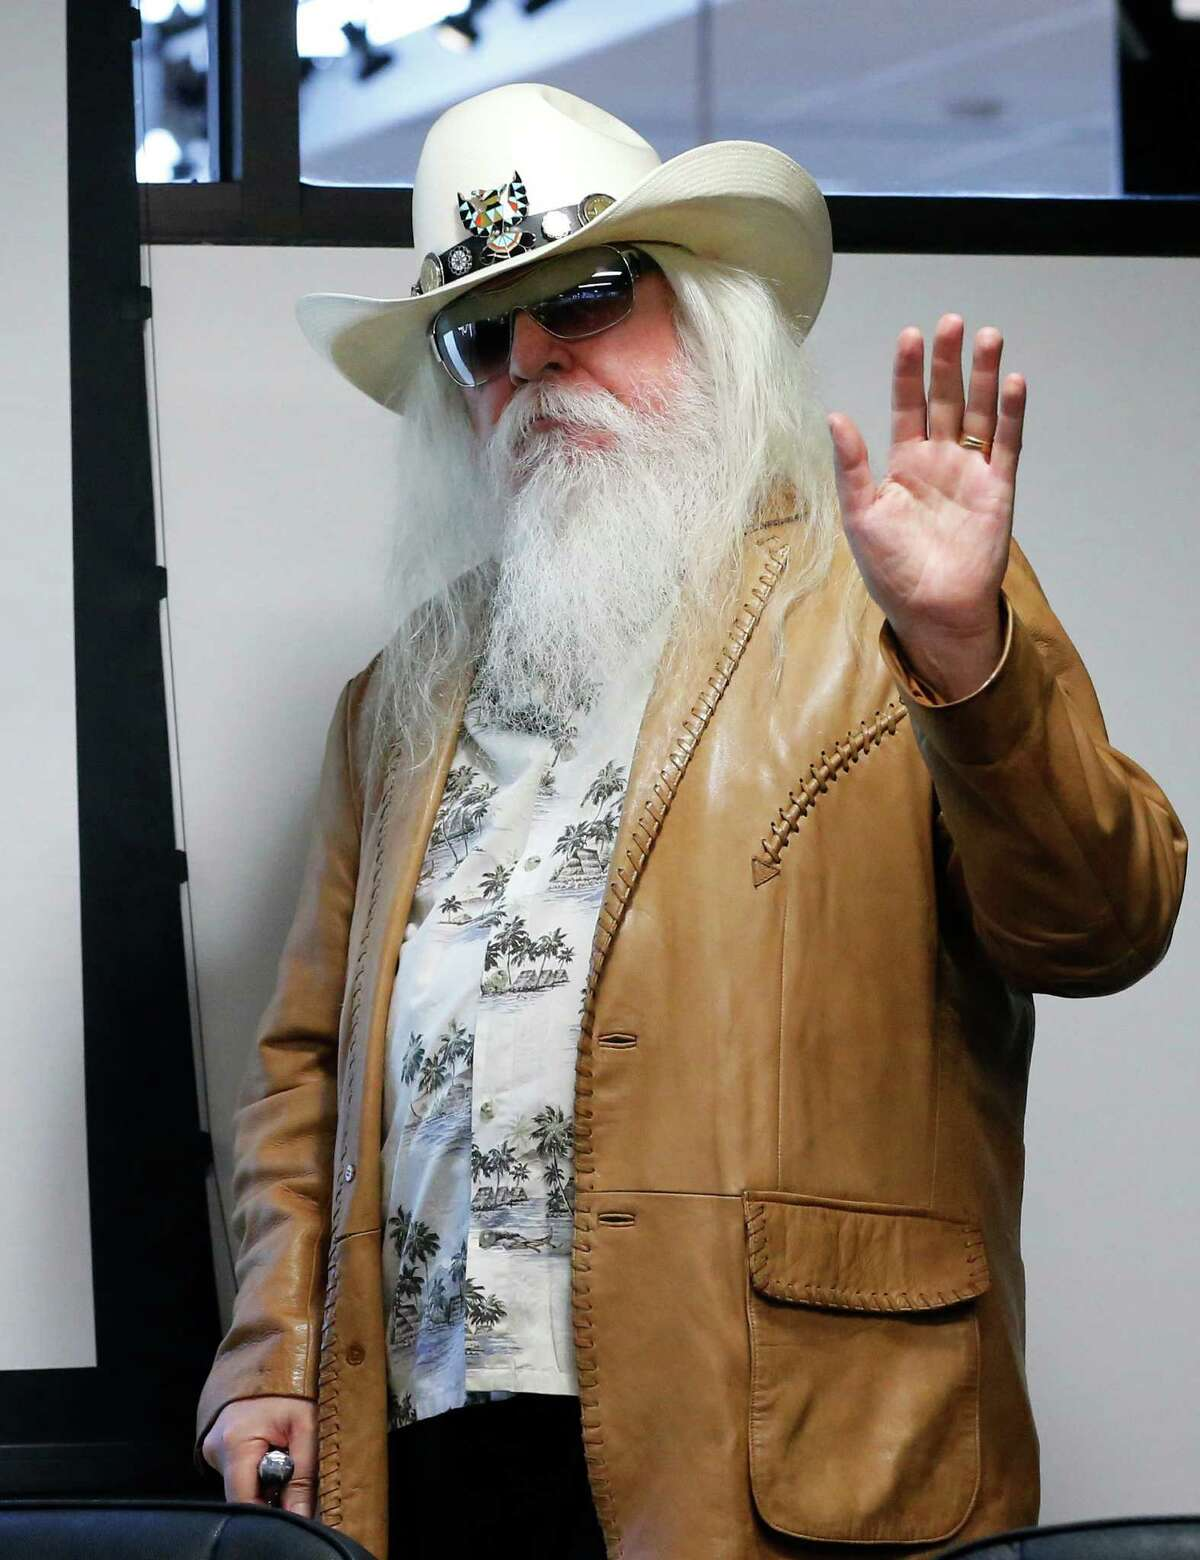 FILE - In this Jan. 29, 2013, file photo, Leon Russell waves as he is introduced in Tulsa, Okla. Russell, who sang, wrote and produced some of rock 'n' roll's top records, has died. (AP Photo/Sue Ogrocki, File) ORG XMIT: NY203